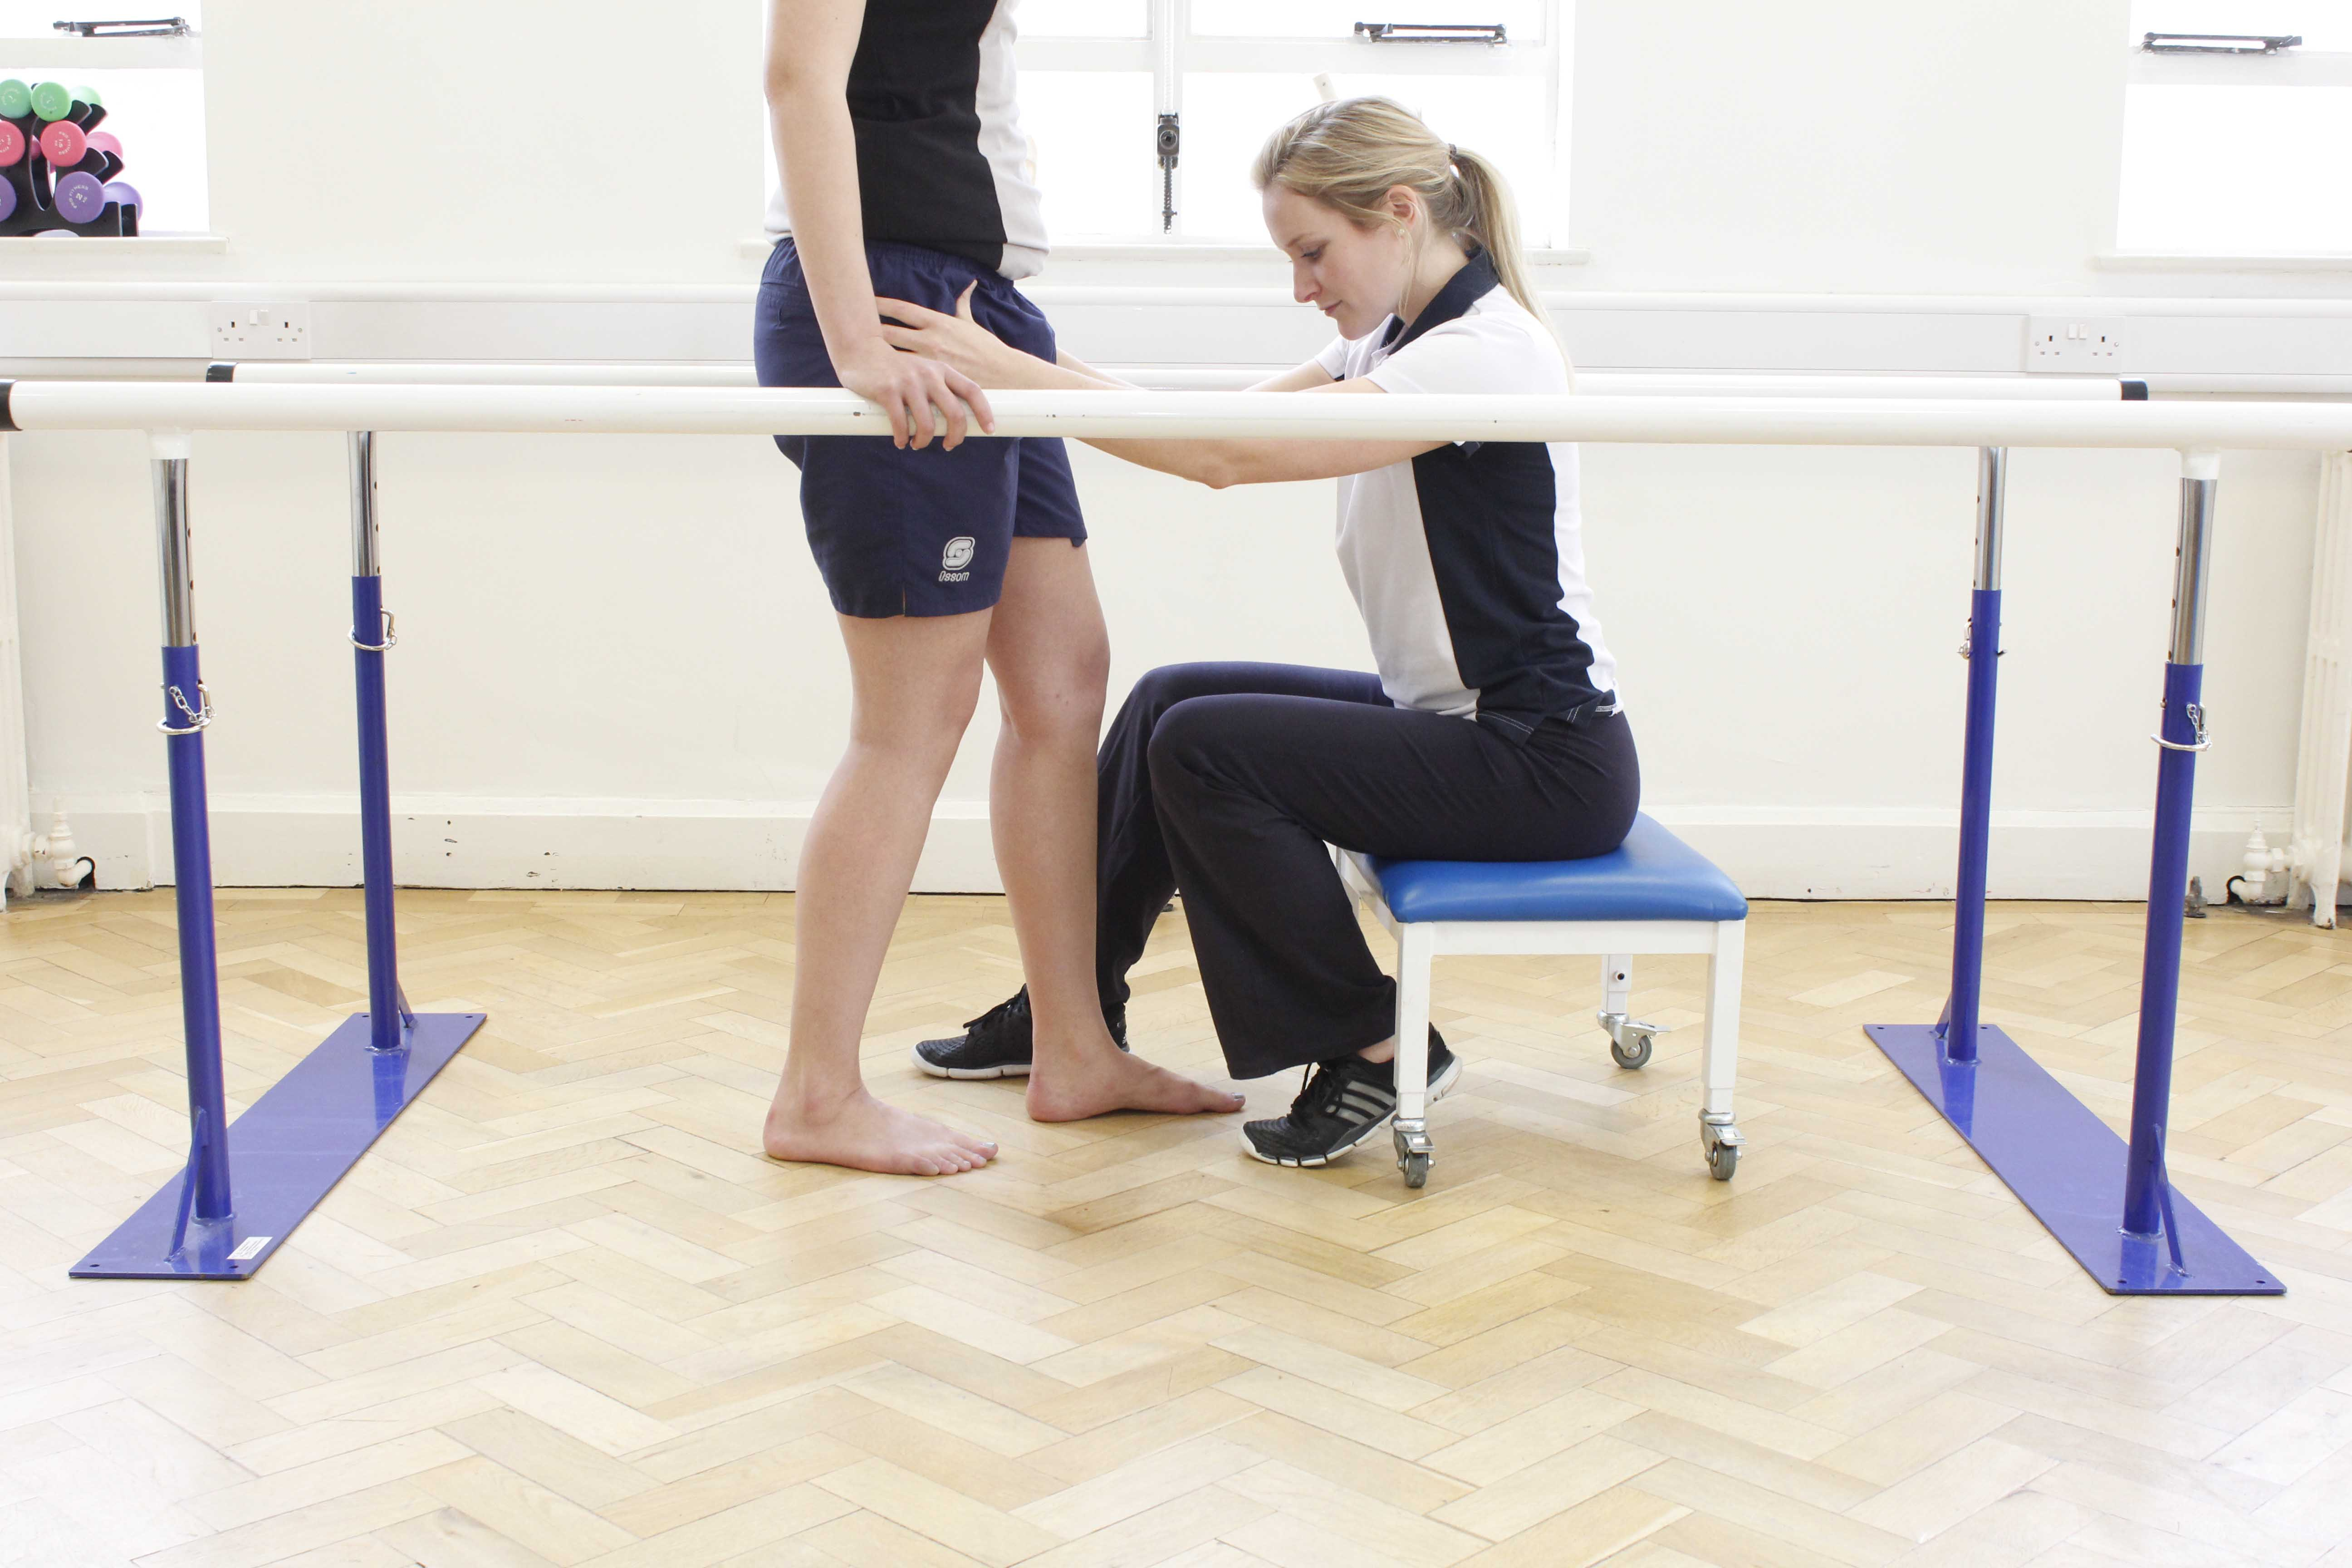 Gait re-education exercises between the parallel bars supervised by experienced physiotherapist